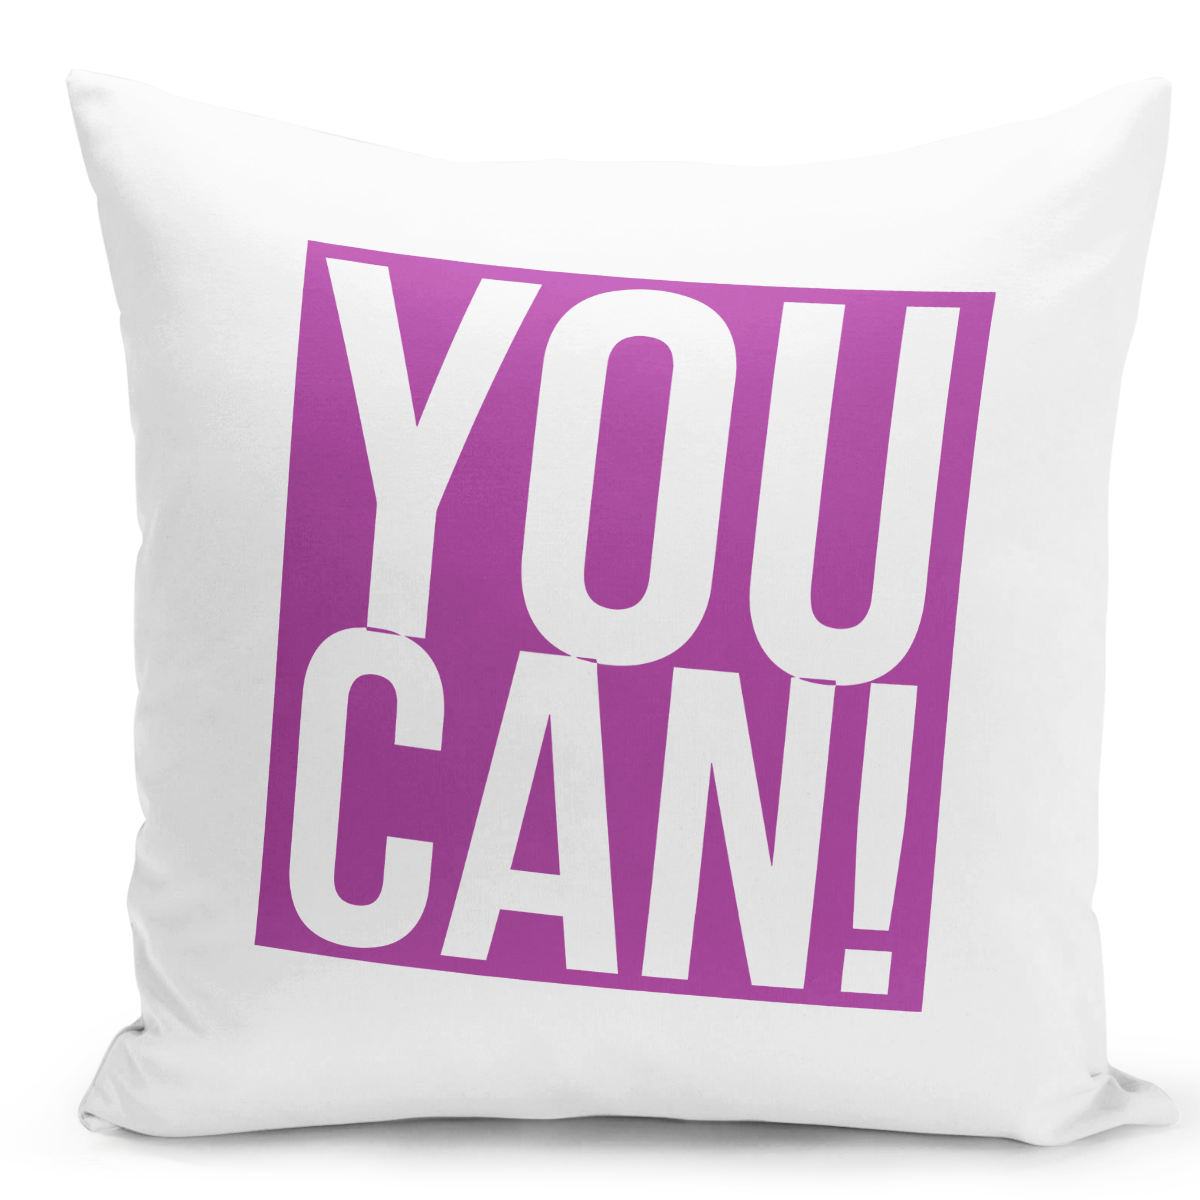 16x16-inch-Throw-Pillow-for-Home-Decor-with-Stuffing-You-Can-Self-Motivation-Pillow-